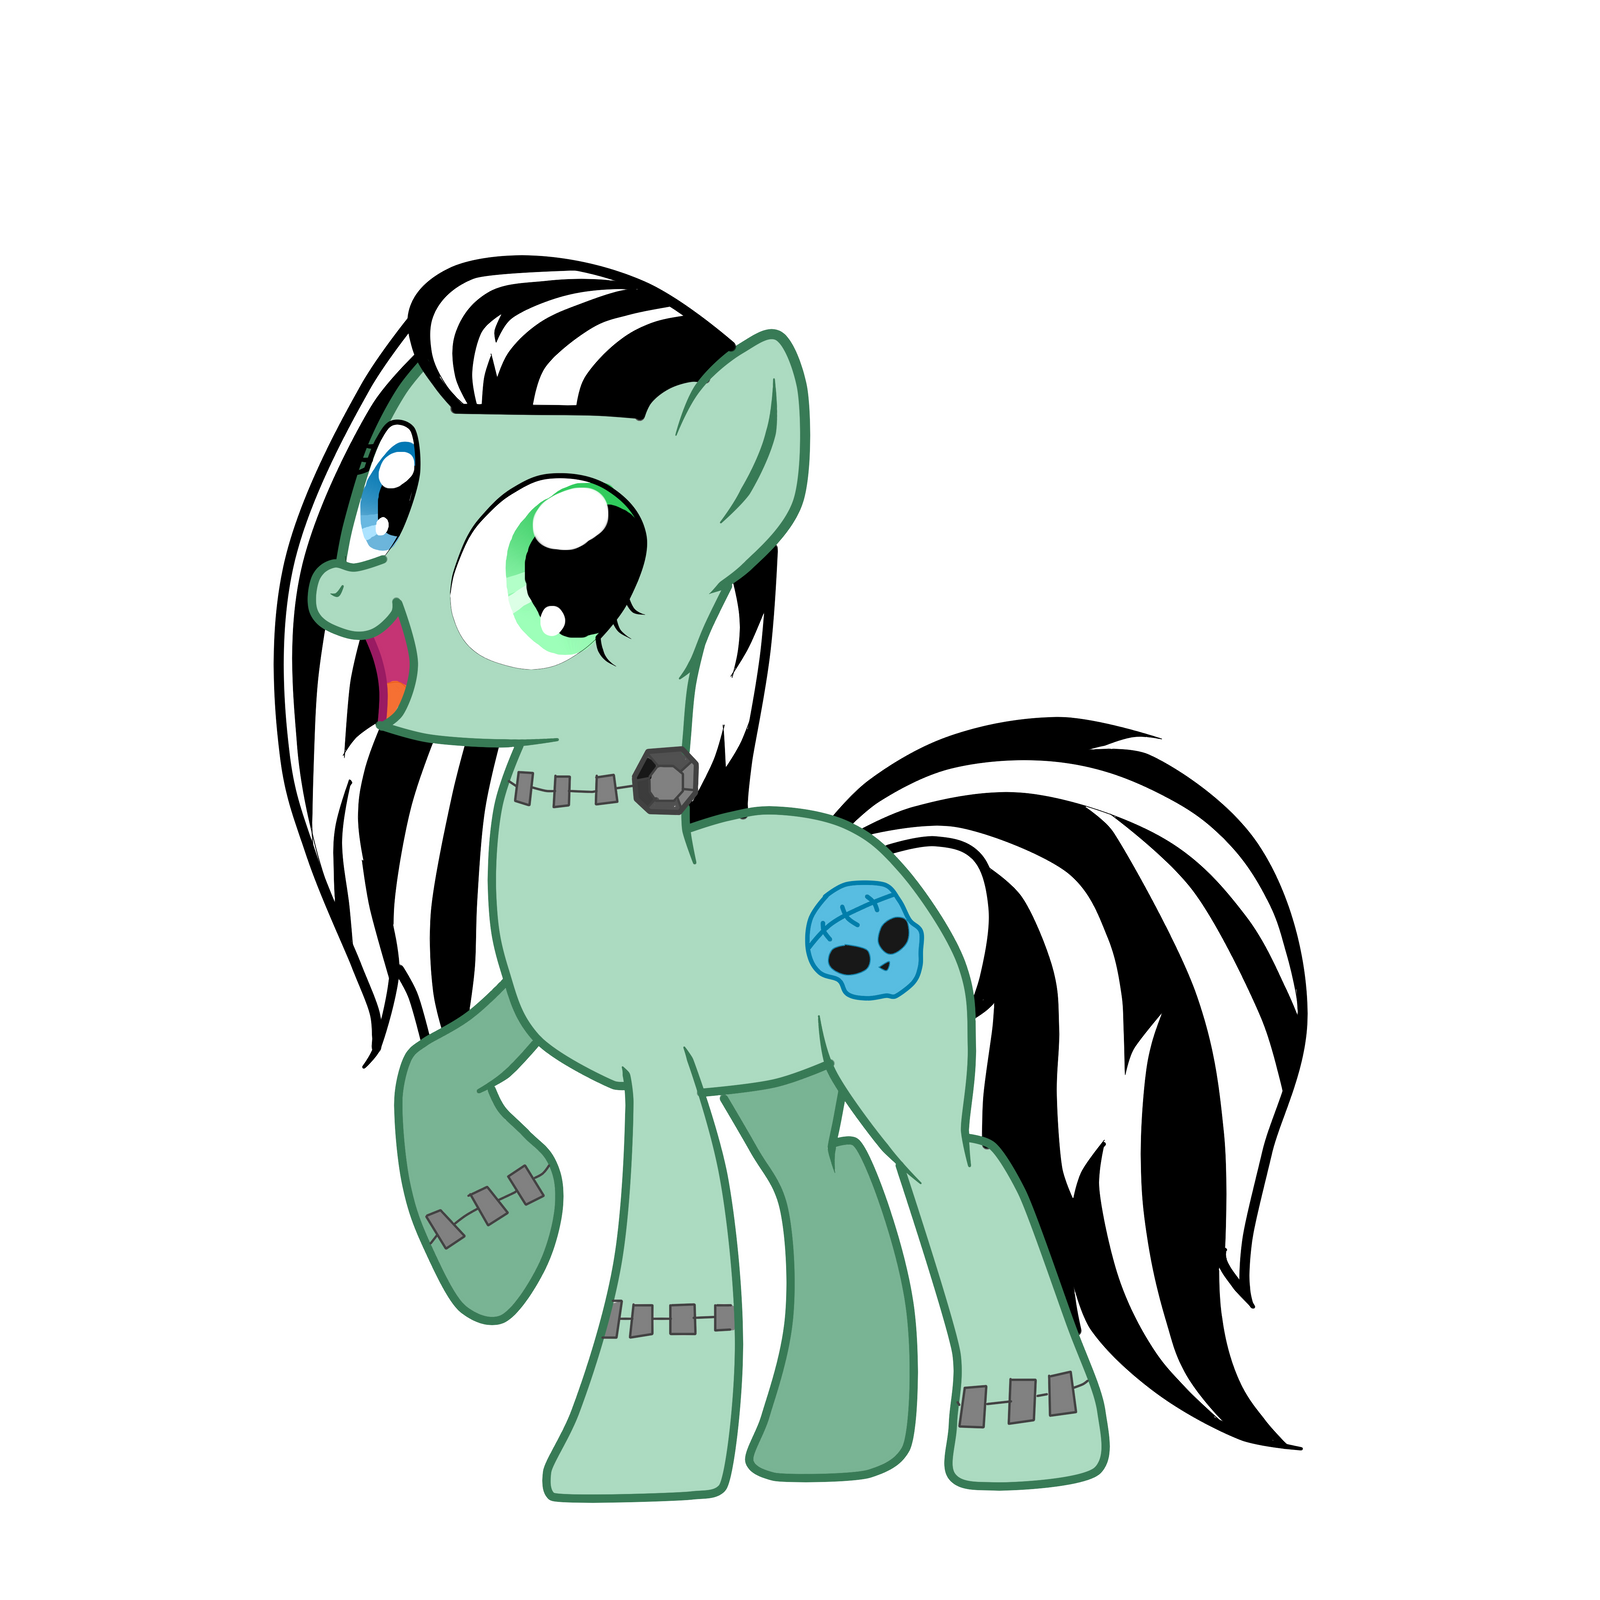 frankie_stein_in_my_little_pony_by_chief_creator-d6p2261.png